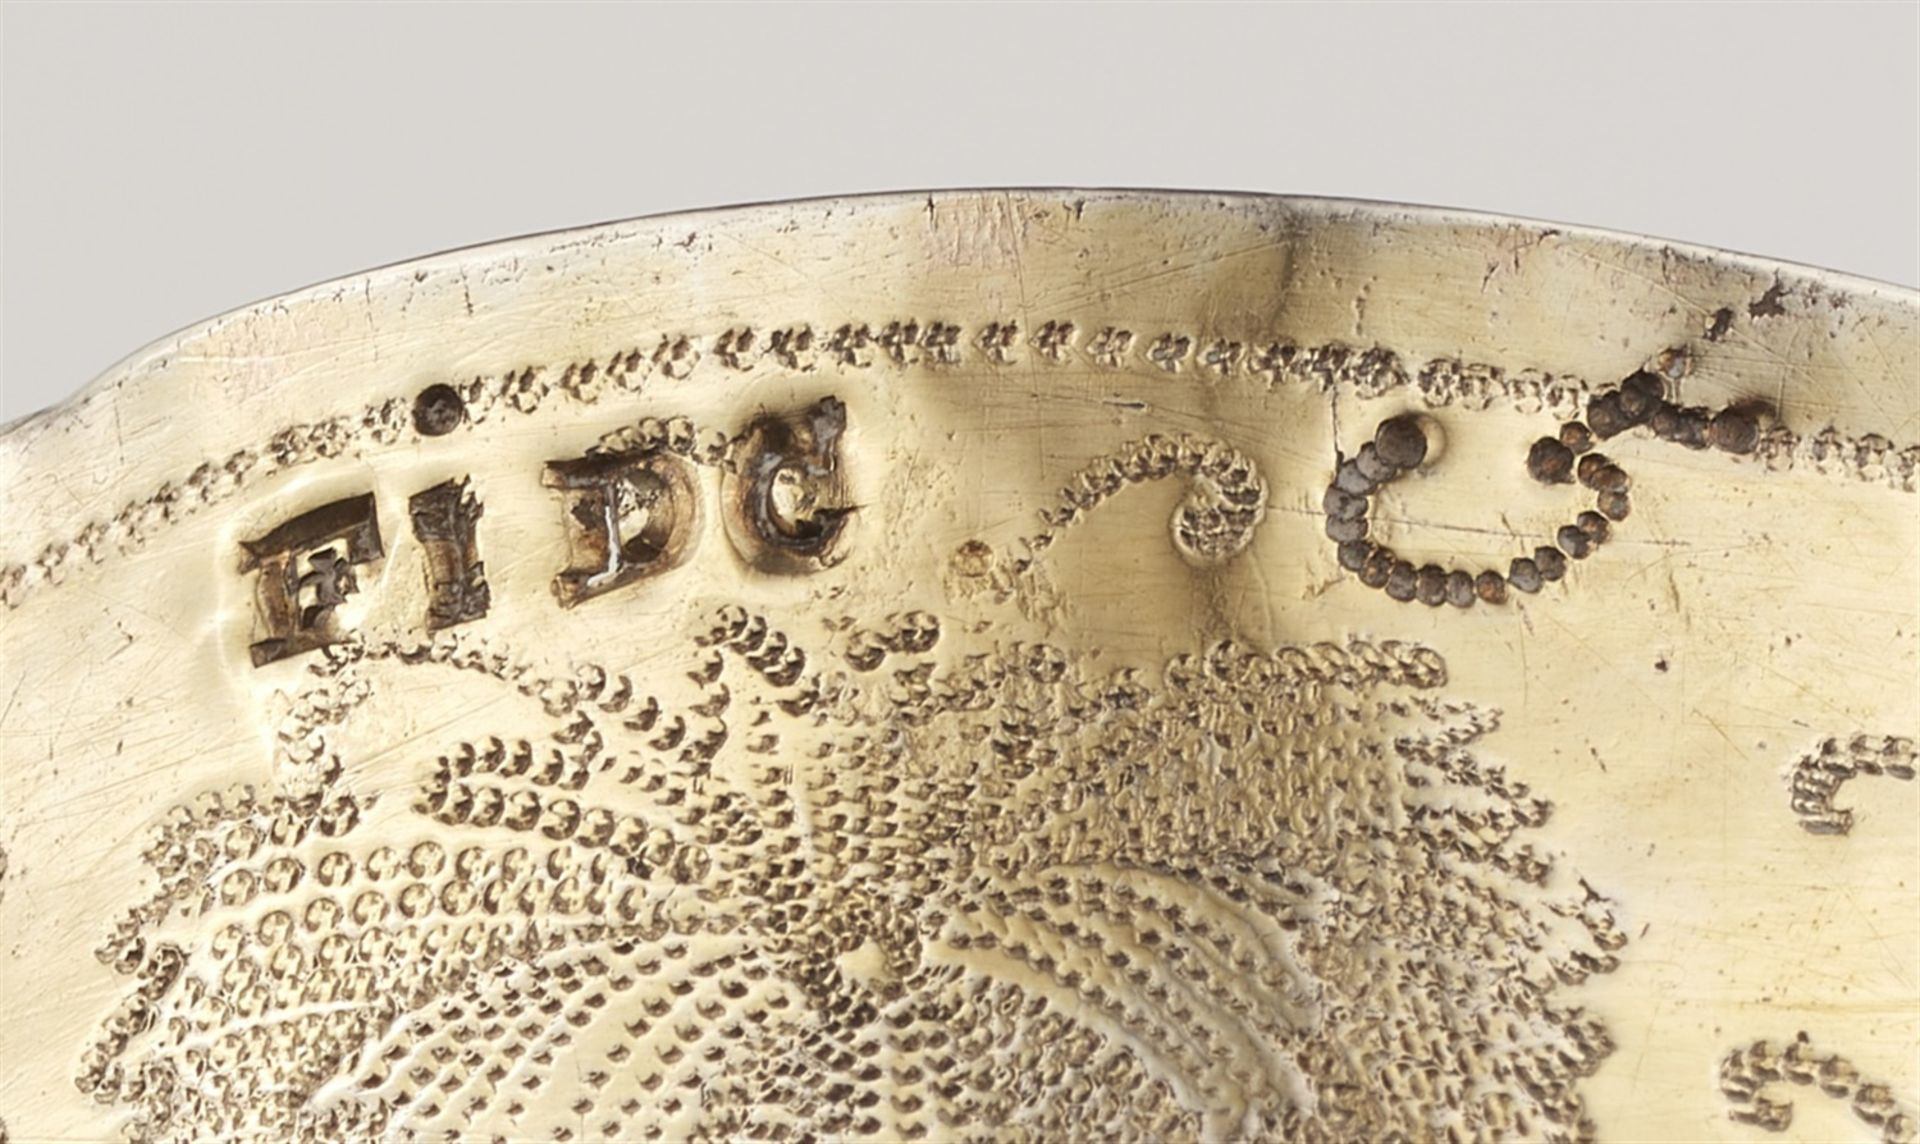 Los 718 - A Nuremberg silver gobletSilver; gold-plated. A silver-gilt goblet, scalloped base with gadrooned